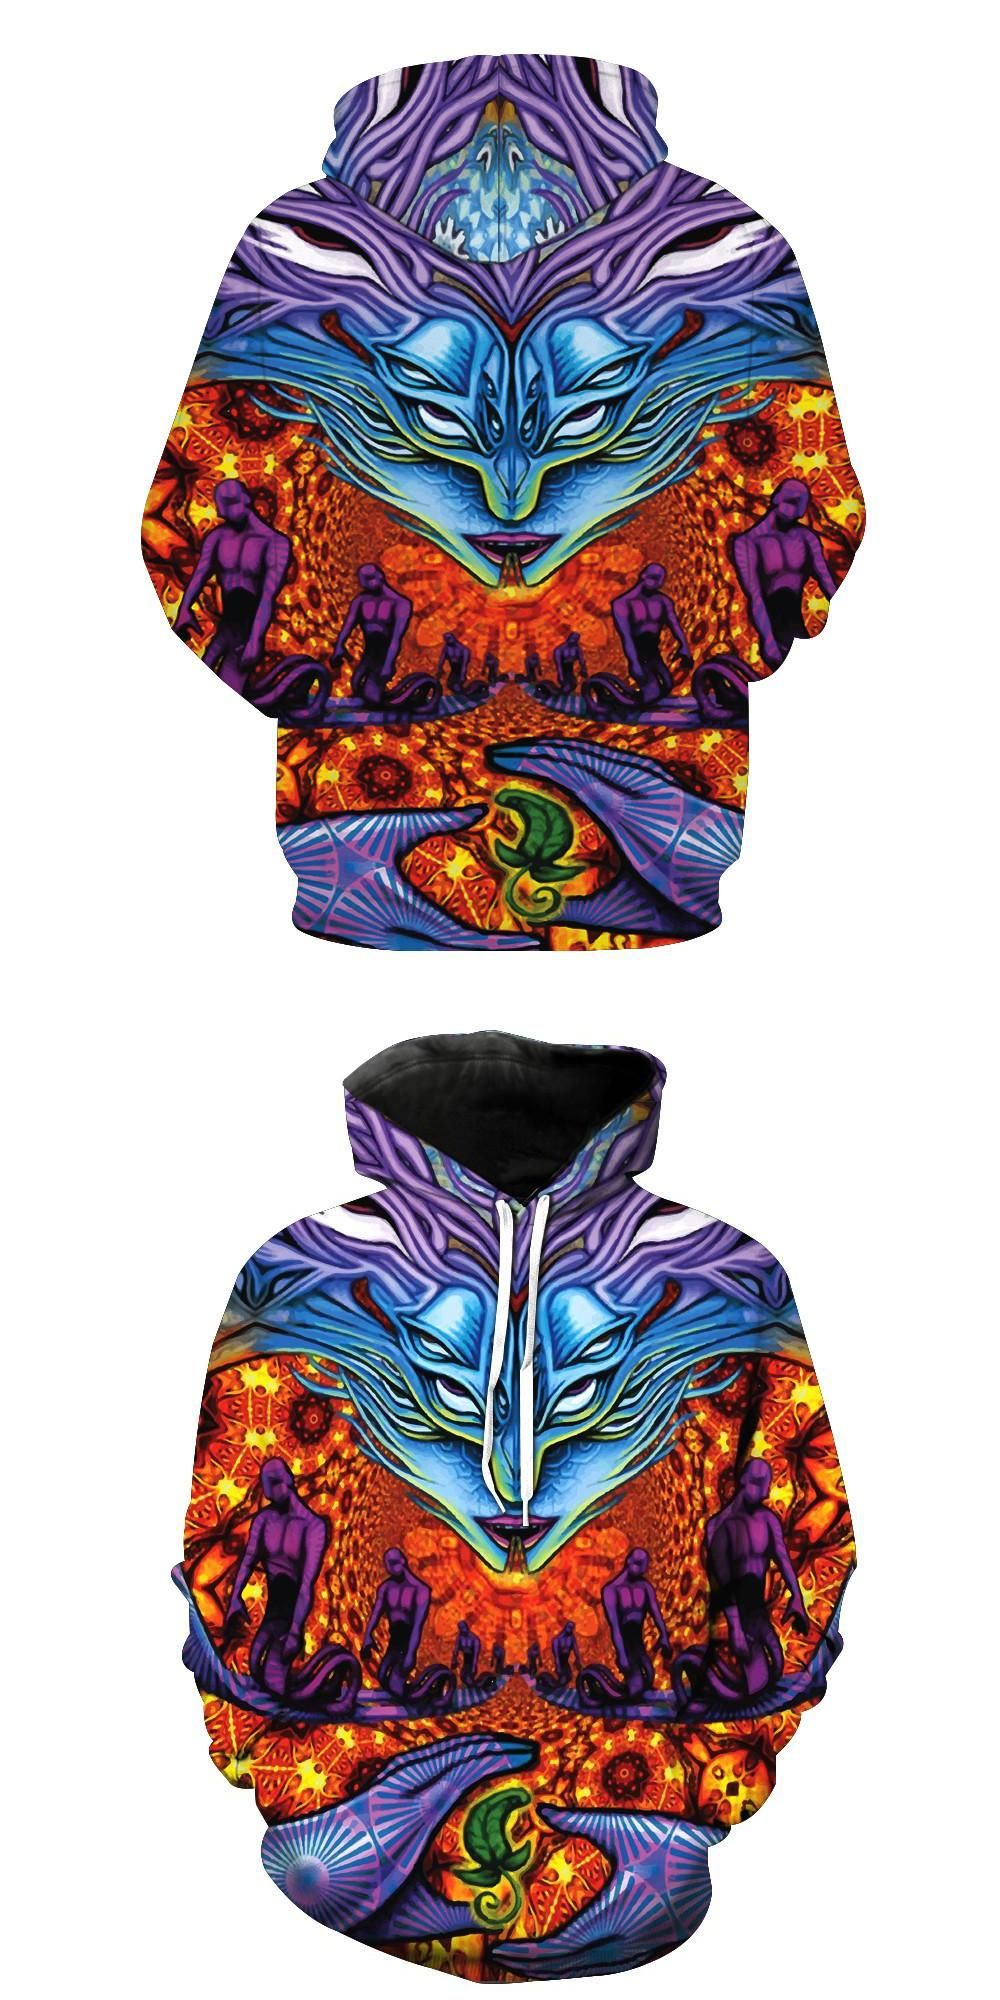 1744ddc02d78 2017 new fashion Cool sweatshirt Hoodies Men women 3D print Cobra gods Snake  man hot Style Streetwear Long sleeve clothing